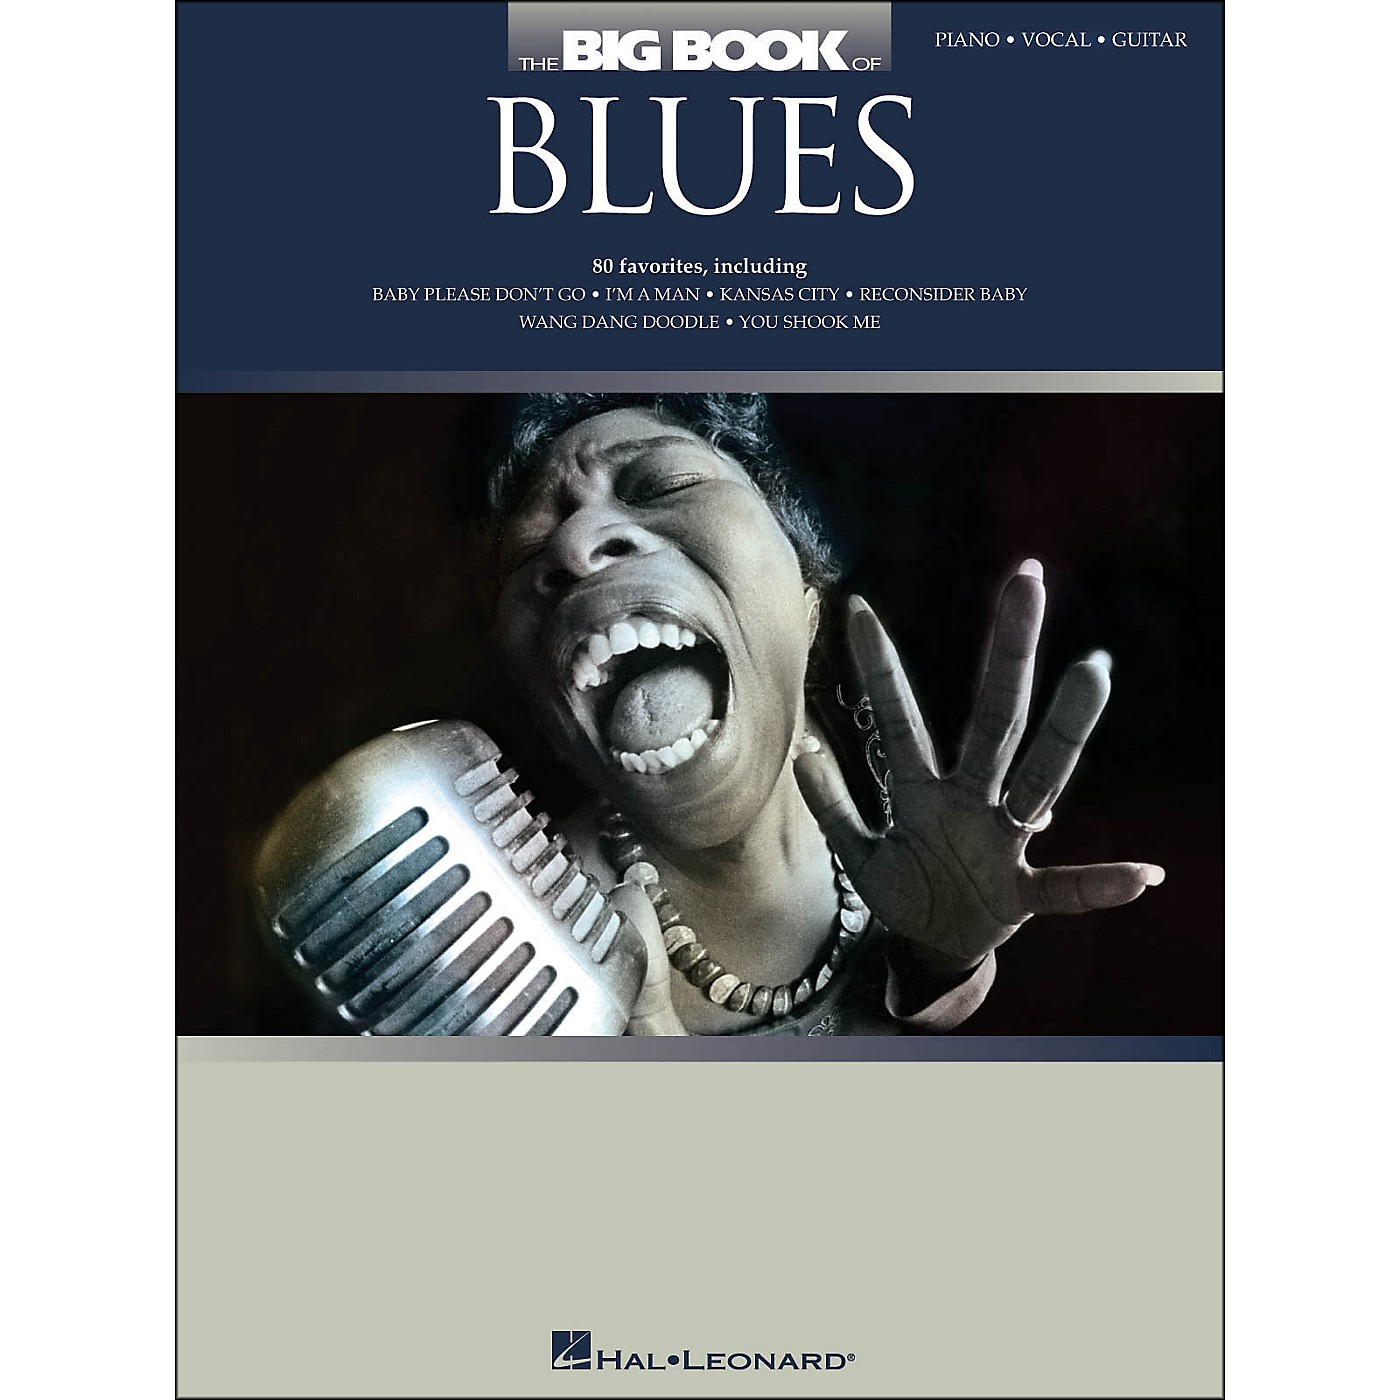 Hal Leonard The Big Book Of Blues arranged for piano, vocal, and guitar (P/V/G) thumbnail